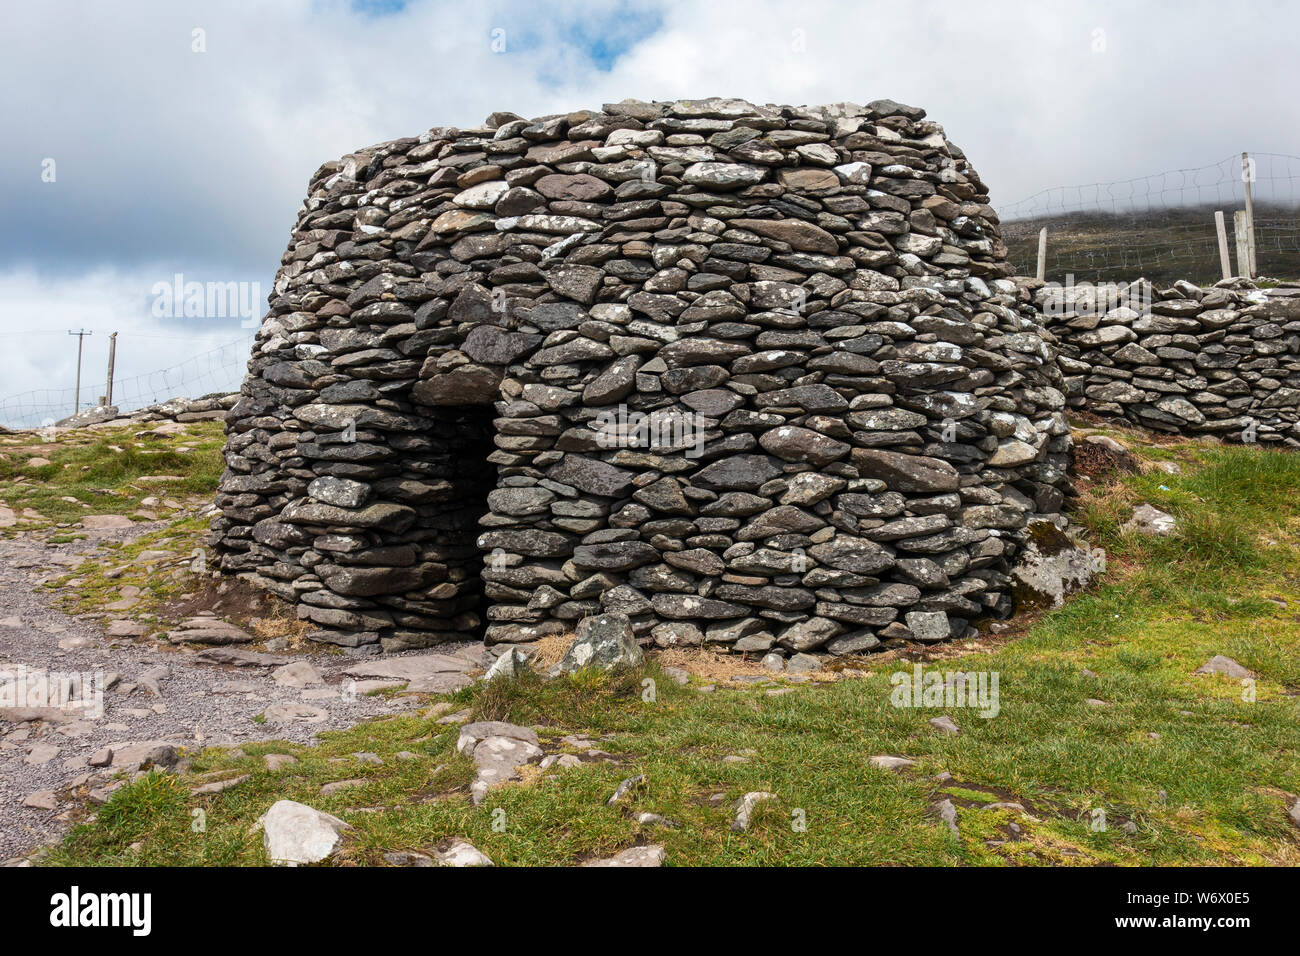 Caher Conor Beehive Huts at Fahan on the Dingle Peninsula, County Kerry, Republic of Ireland Stock Photo